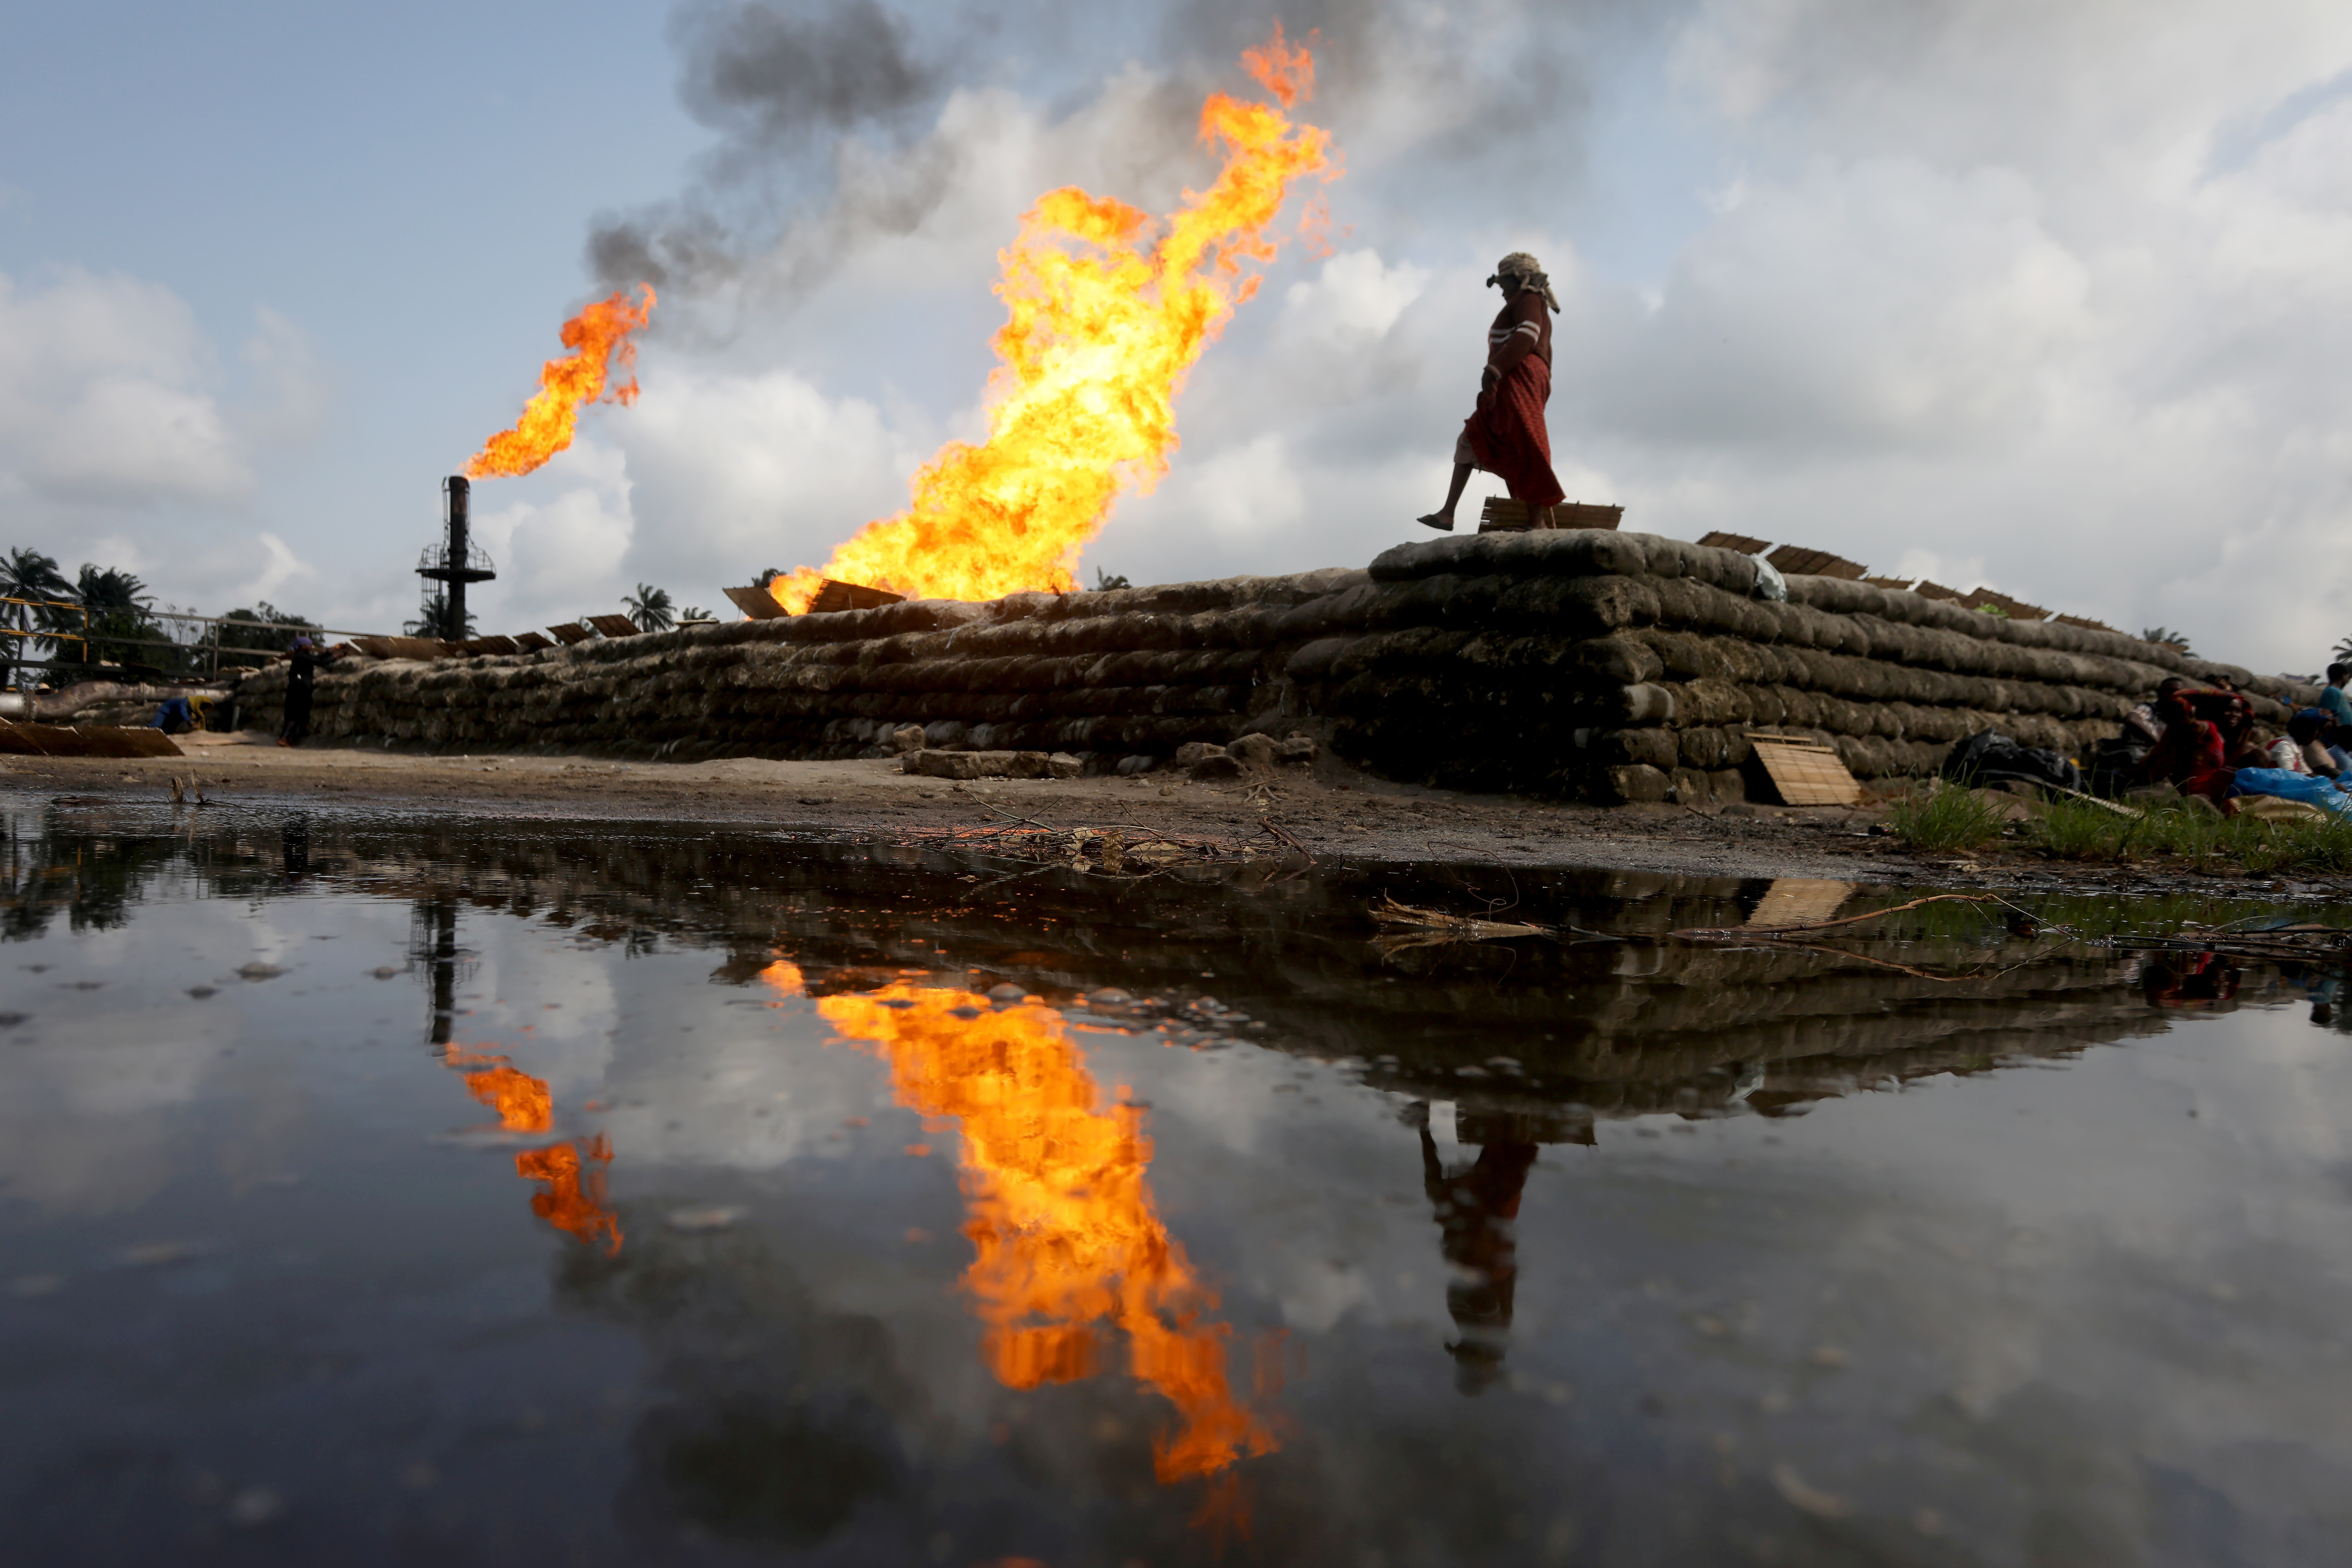 Two gas flaring furnaces and a woman walking on sand barriers are reflected in a pool of oil-smeared water at a flow station in Ughelli, Delta State, Nigeria September 17, 2020. Picture taken September 17, 2020.